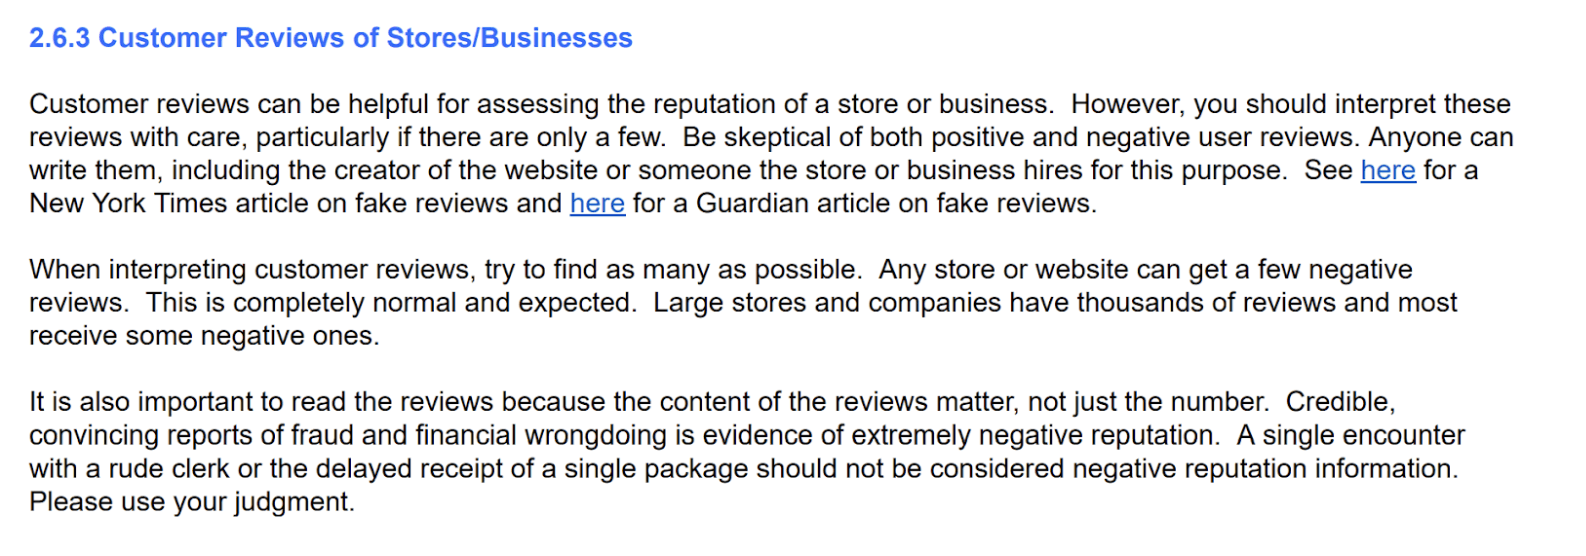 Google Quality Raters' Guidelines - Customer Reviews